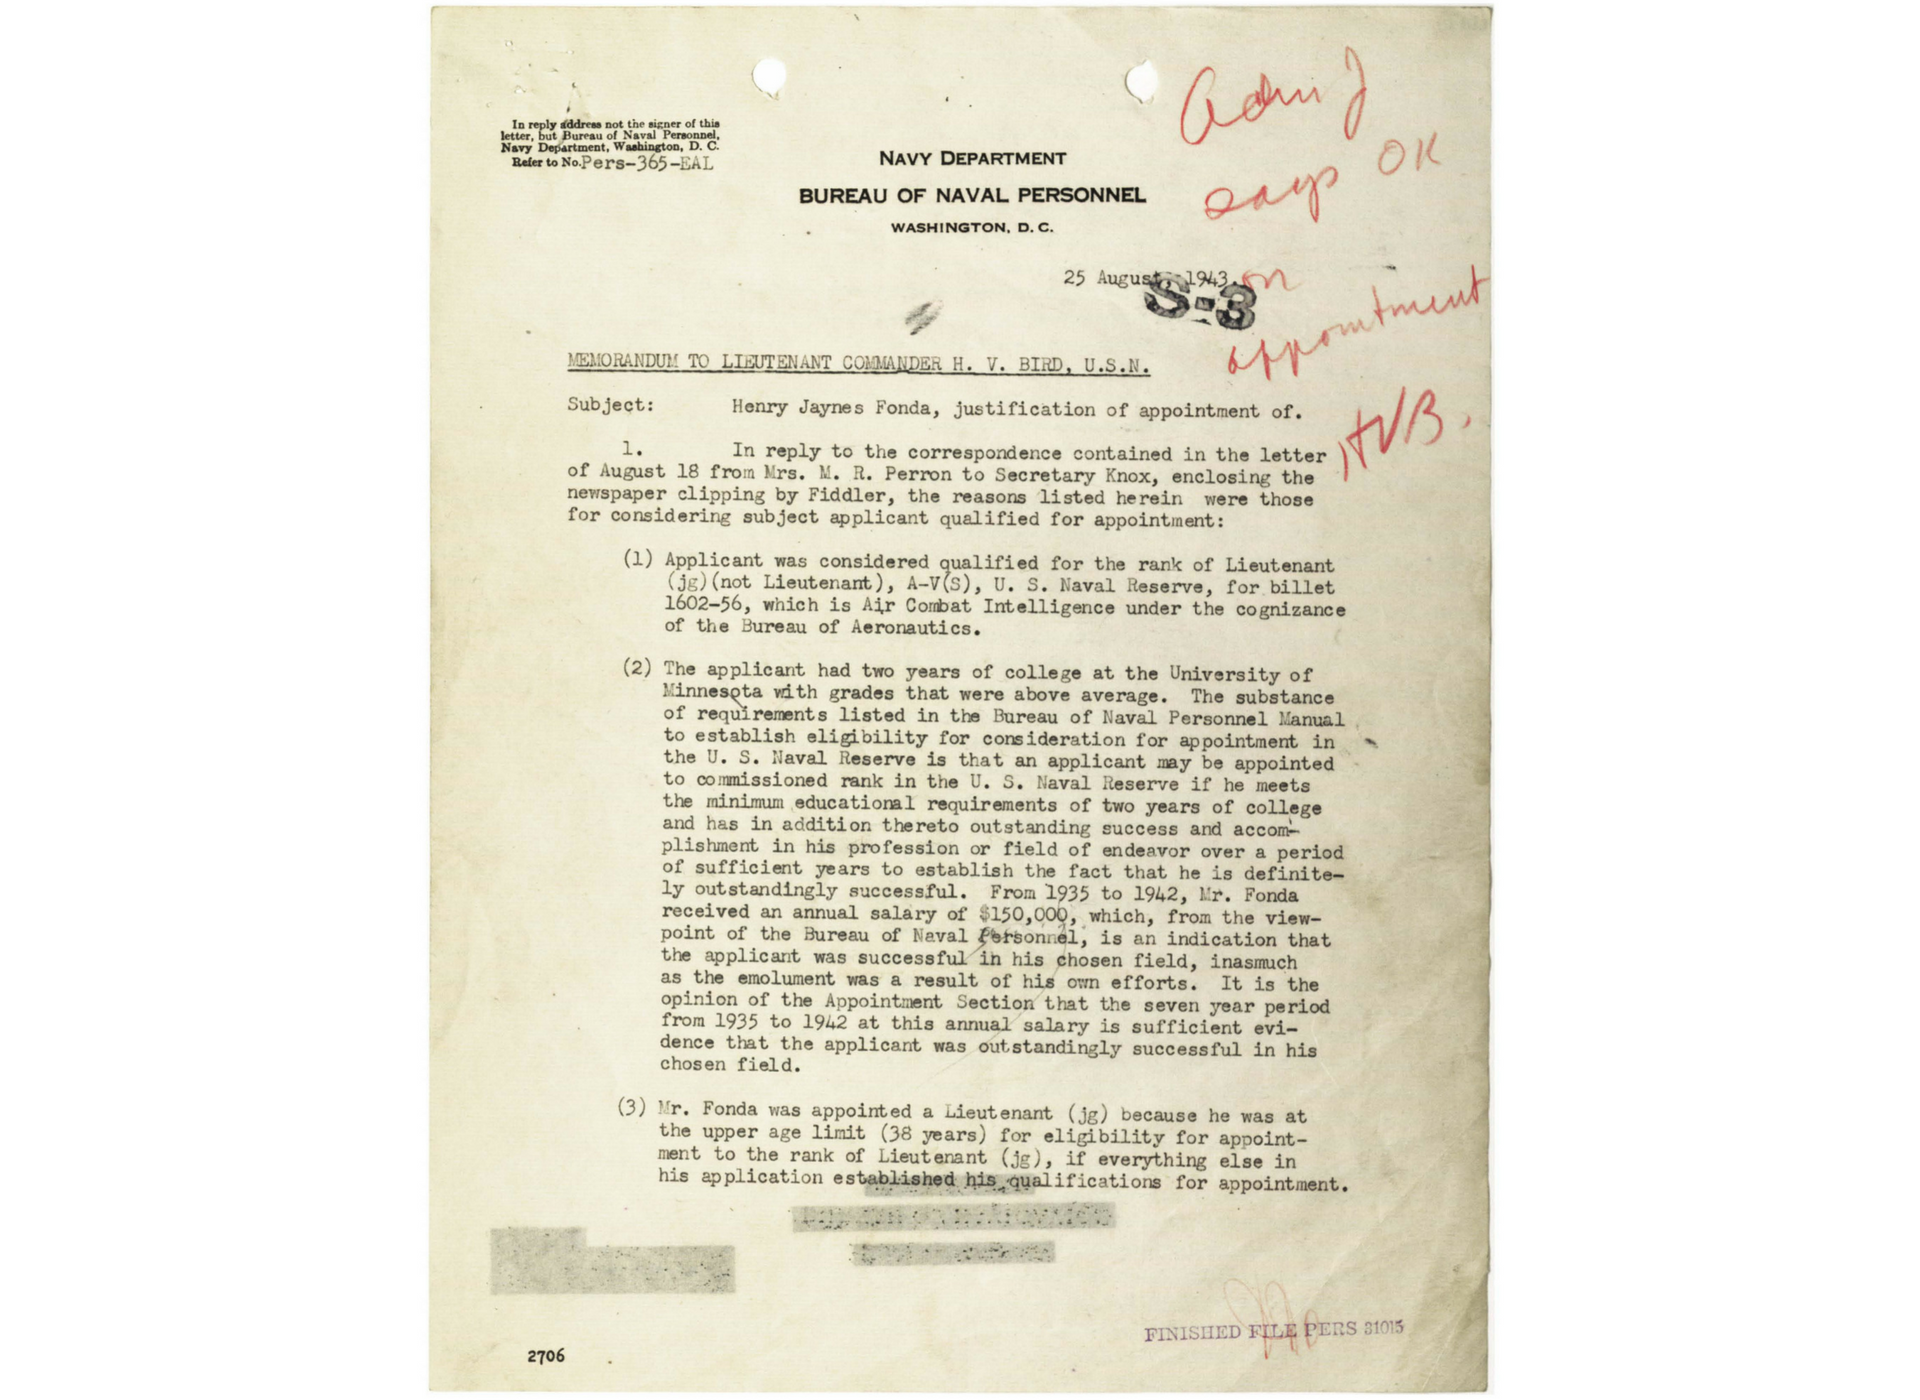 A letter justifying the appointment of Fonda to Lieutenant, junior grade. From the National Archives.